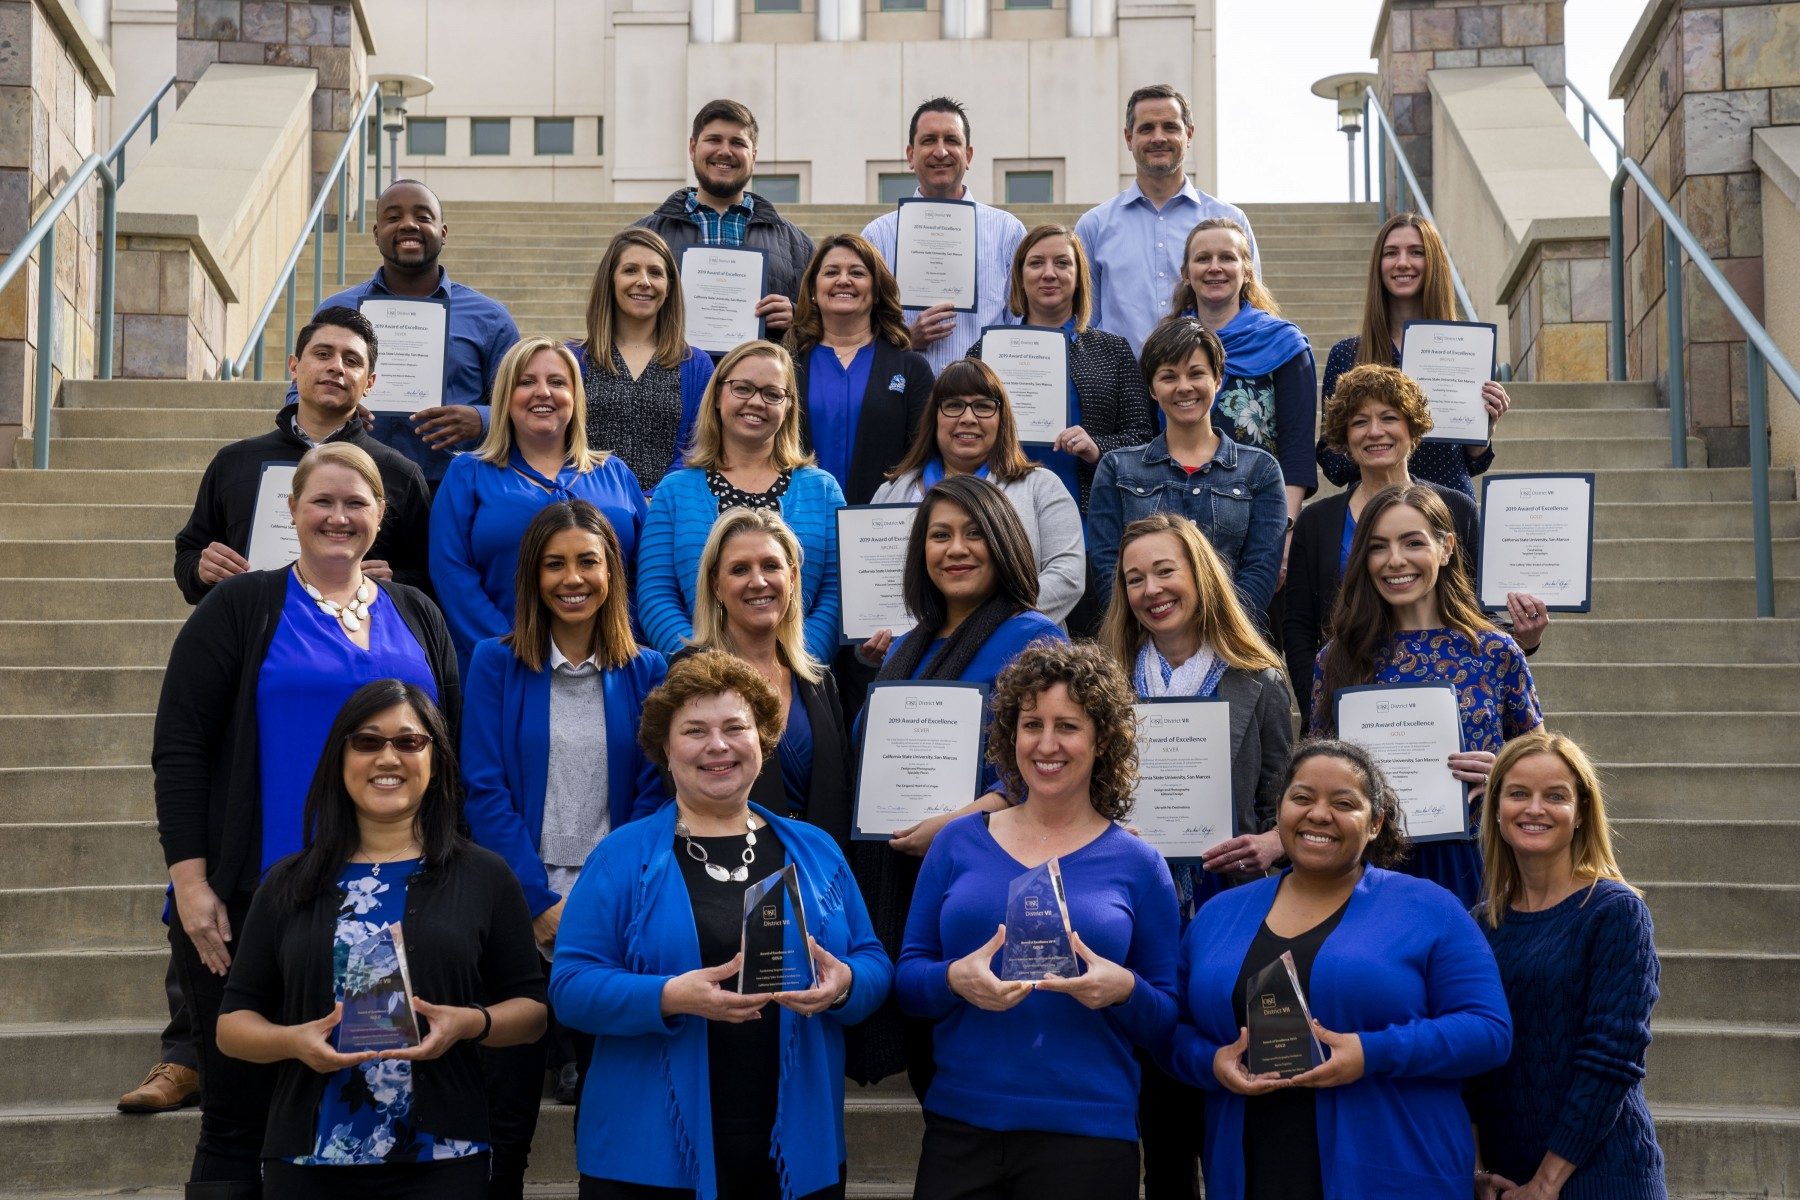 Vice President Cathy Baur joins members of her University Advancement team in February 2019 to celebrate the department receiving 11 awards at a regional conference for the Council for Advancement and Support of Education (CASE), a membership association serving educational institutions and the advancement professionals who work on their behalf in alumni relations, communications, development, marketing and allied areas.